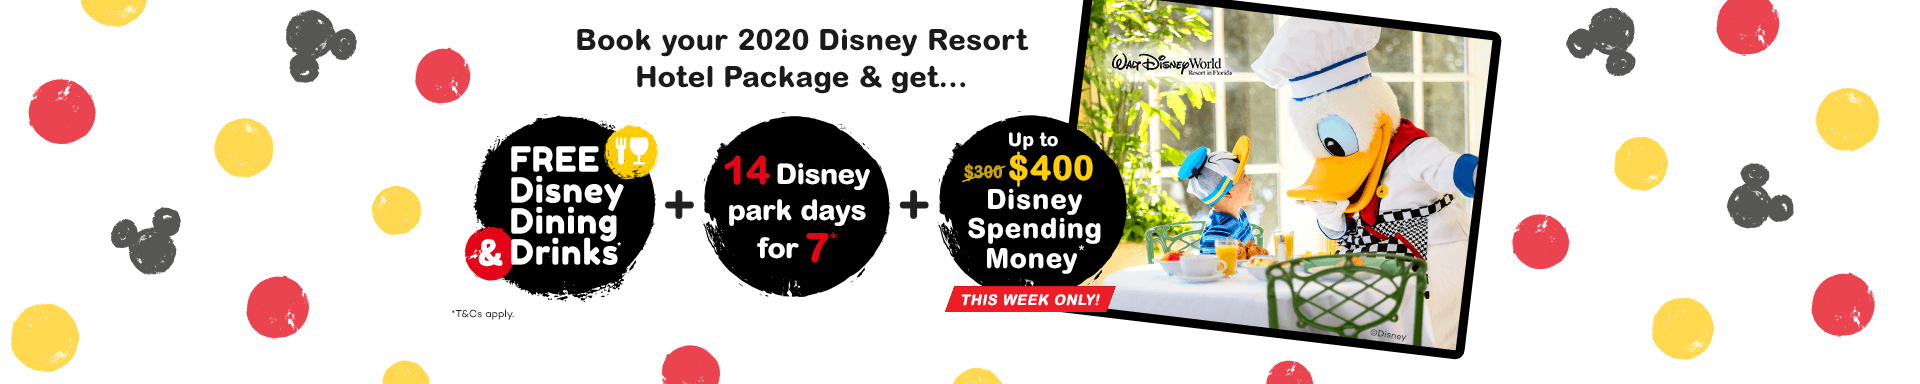 Free Disney Dining & Drinks with 2020 Walt Disney World Resort Packages